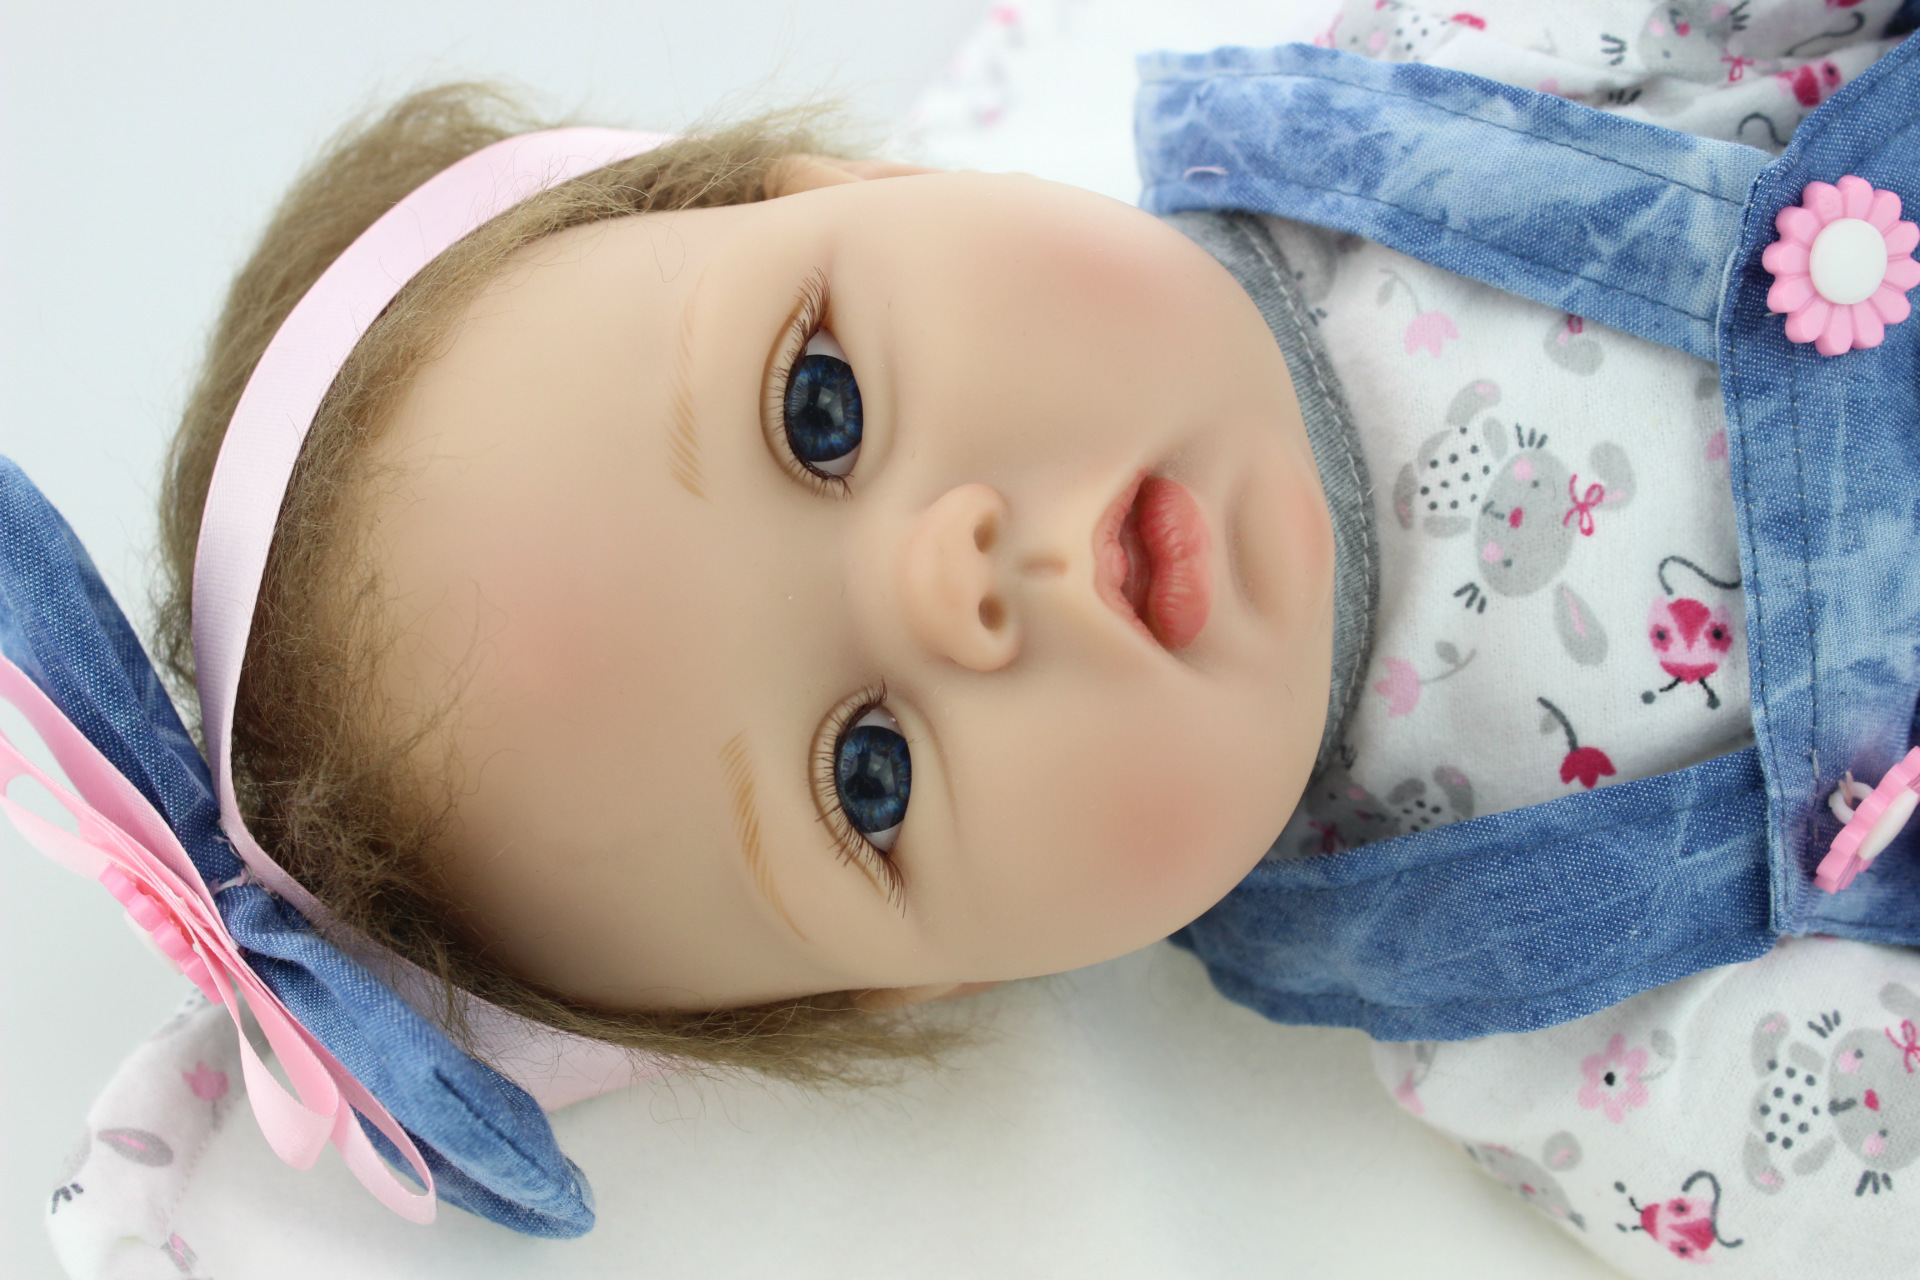 reborn toddler girl high quality reborn toddler princess girl doll Silicone vinyl adorable Lifelike Baby Bonecas girl bebe dollreborn toddler girl high quality reborn toddler princess girl doll Silicone vinyl adorable Lifelike Baby Bonecas girl bebe doll